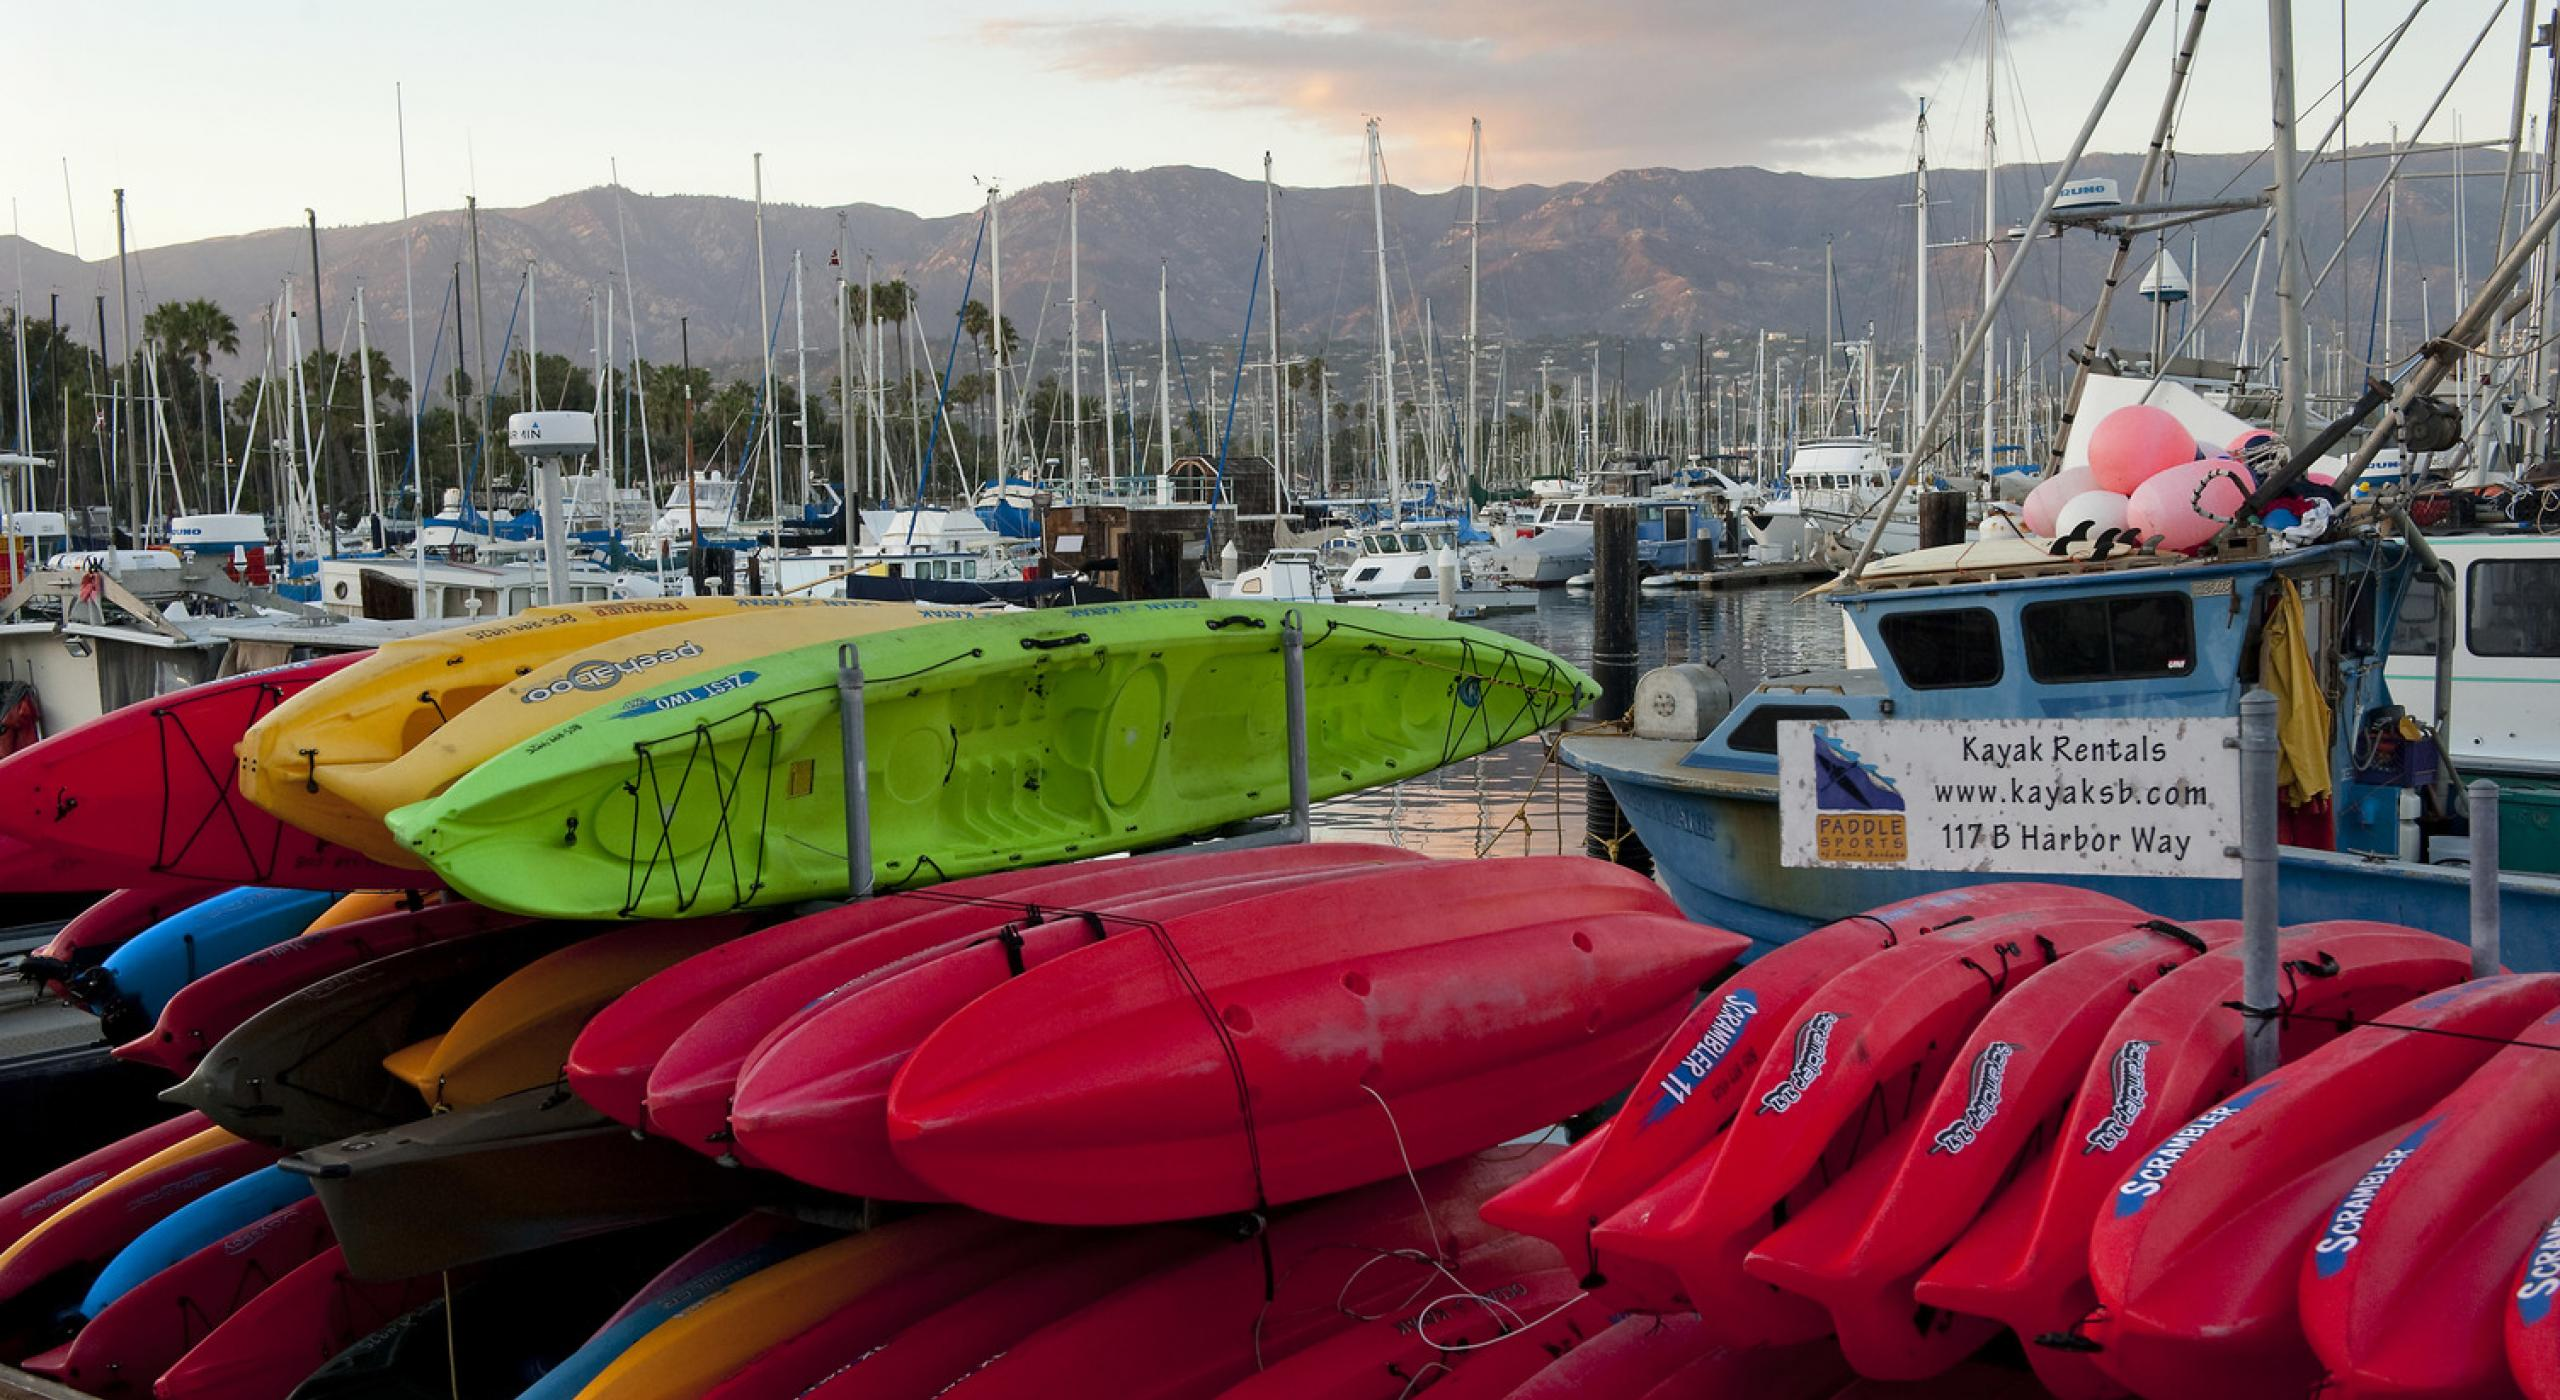 Southern California's Great Outdoors: Boating, Skiing and